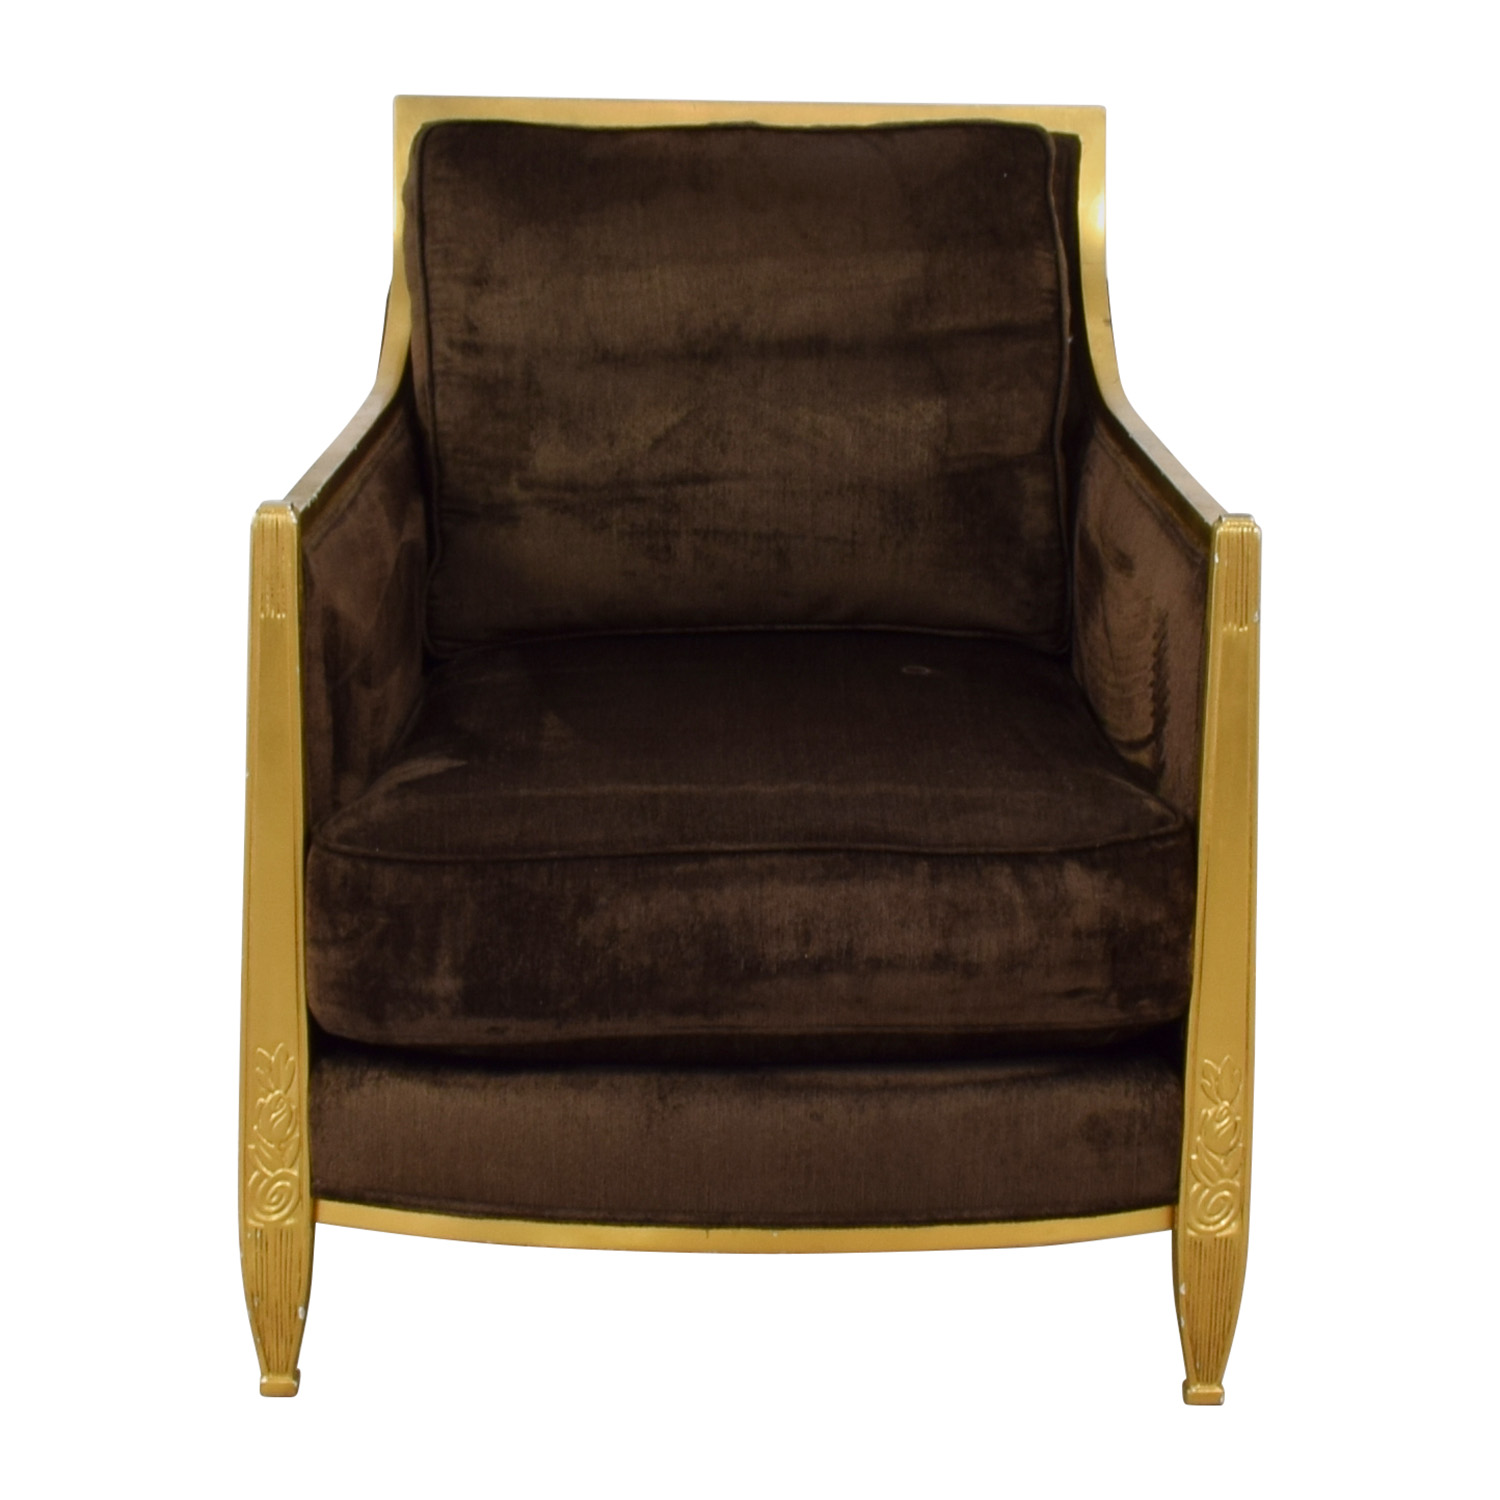 Interior Crafts Interior Crafts Accent Chair discount